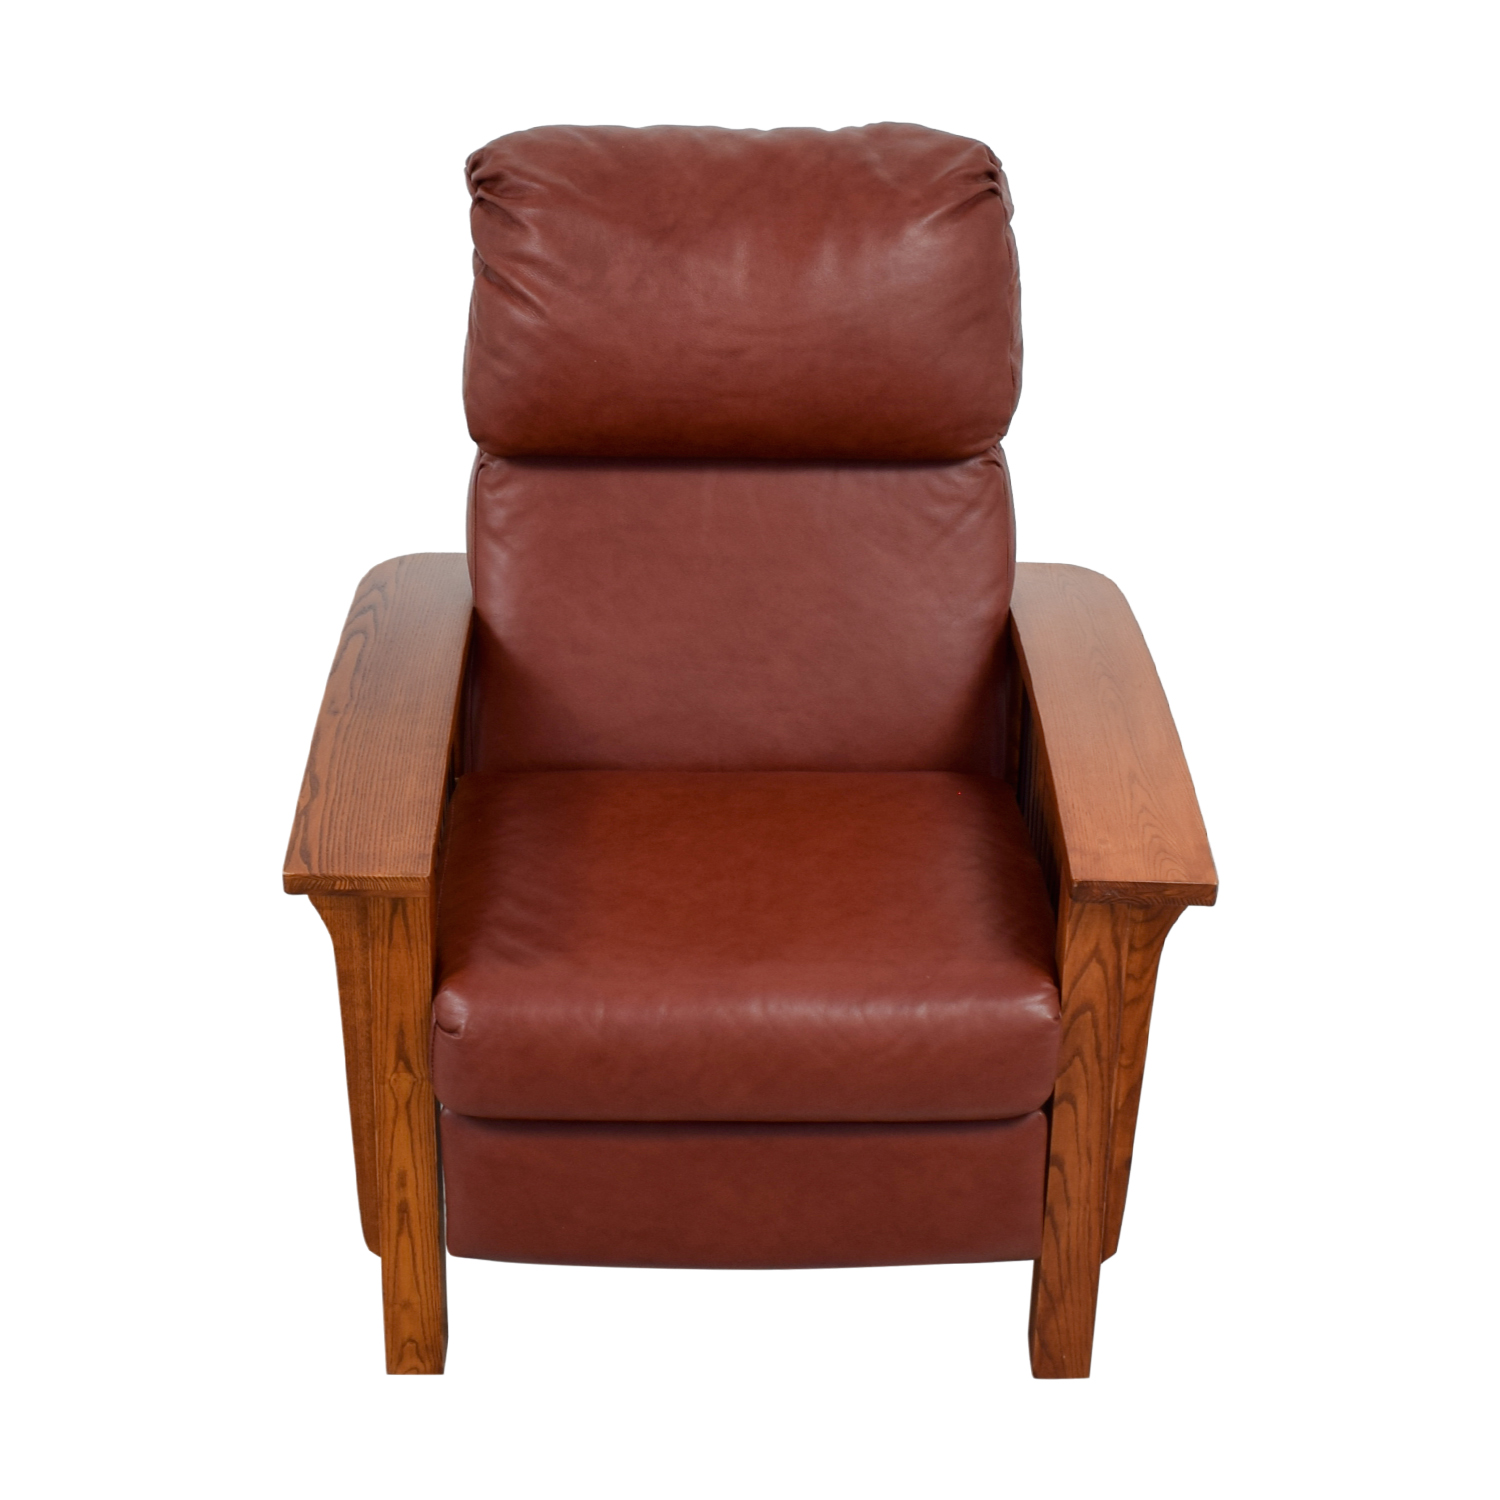 shop Macy's Brown Leather and Wood Recliner Macy's